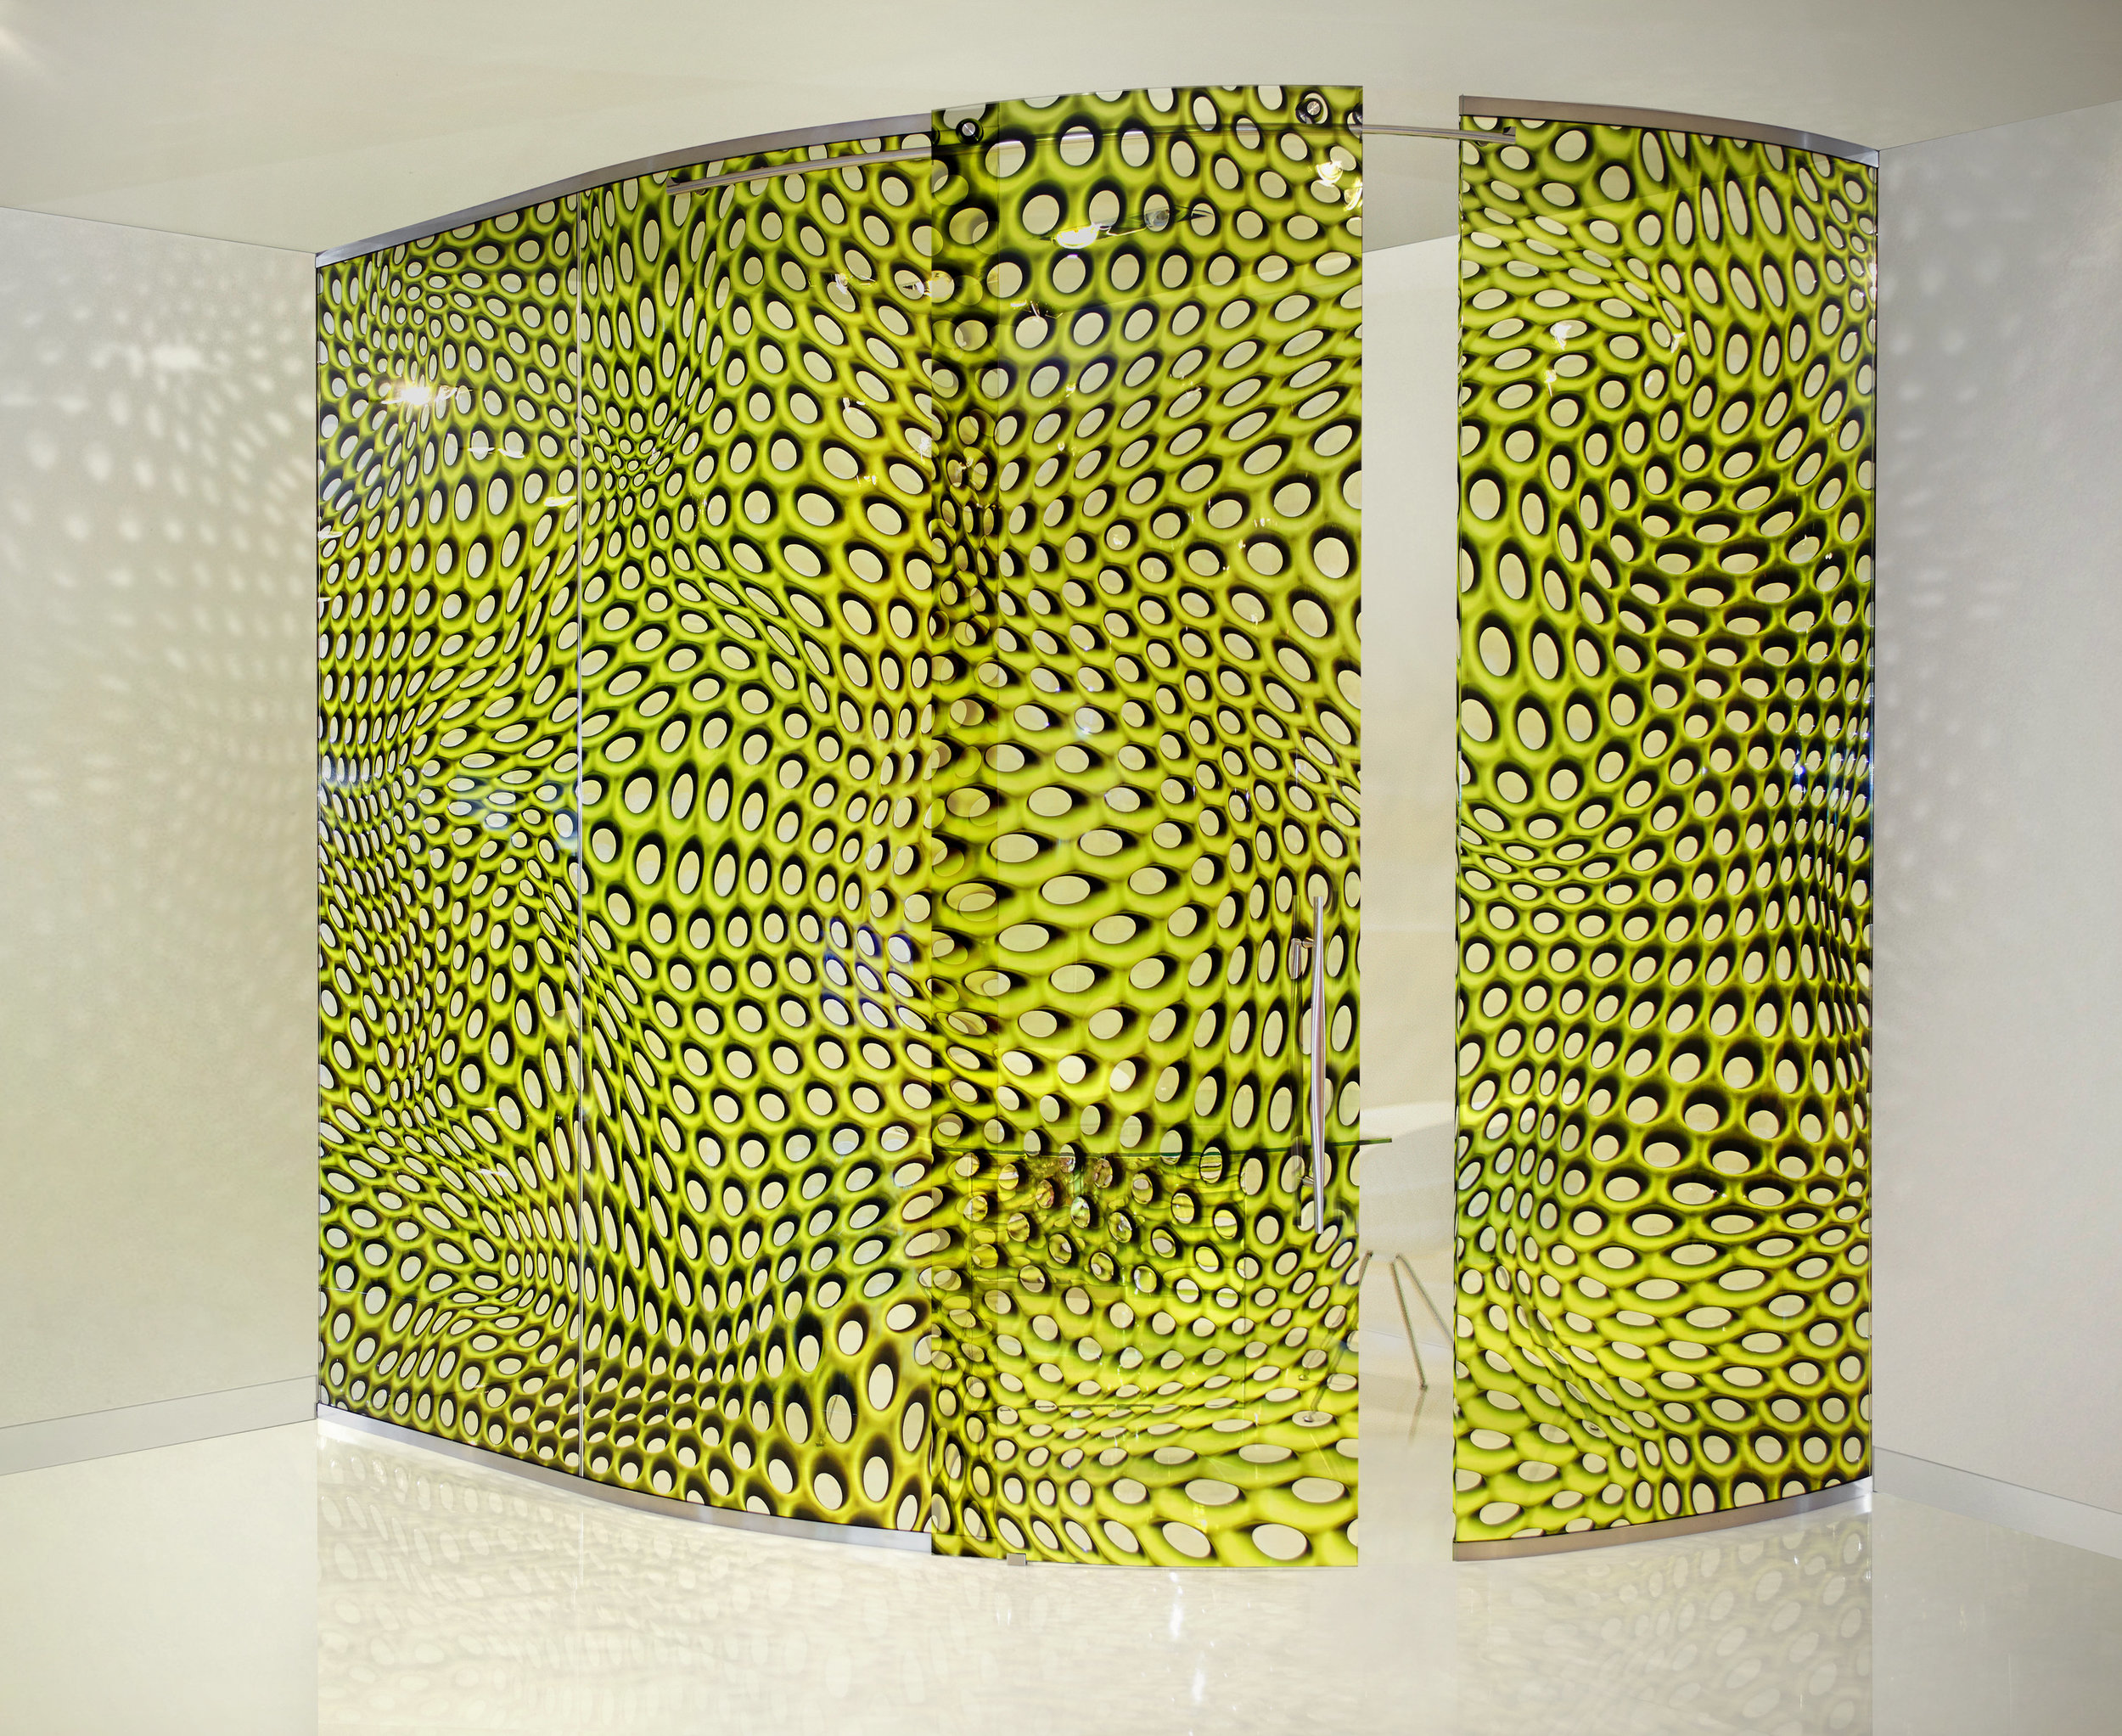 Structure_Circle Lime_Hybrid collection.jpg